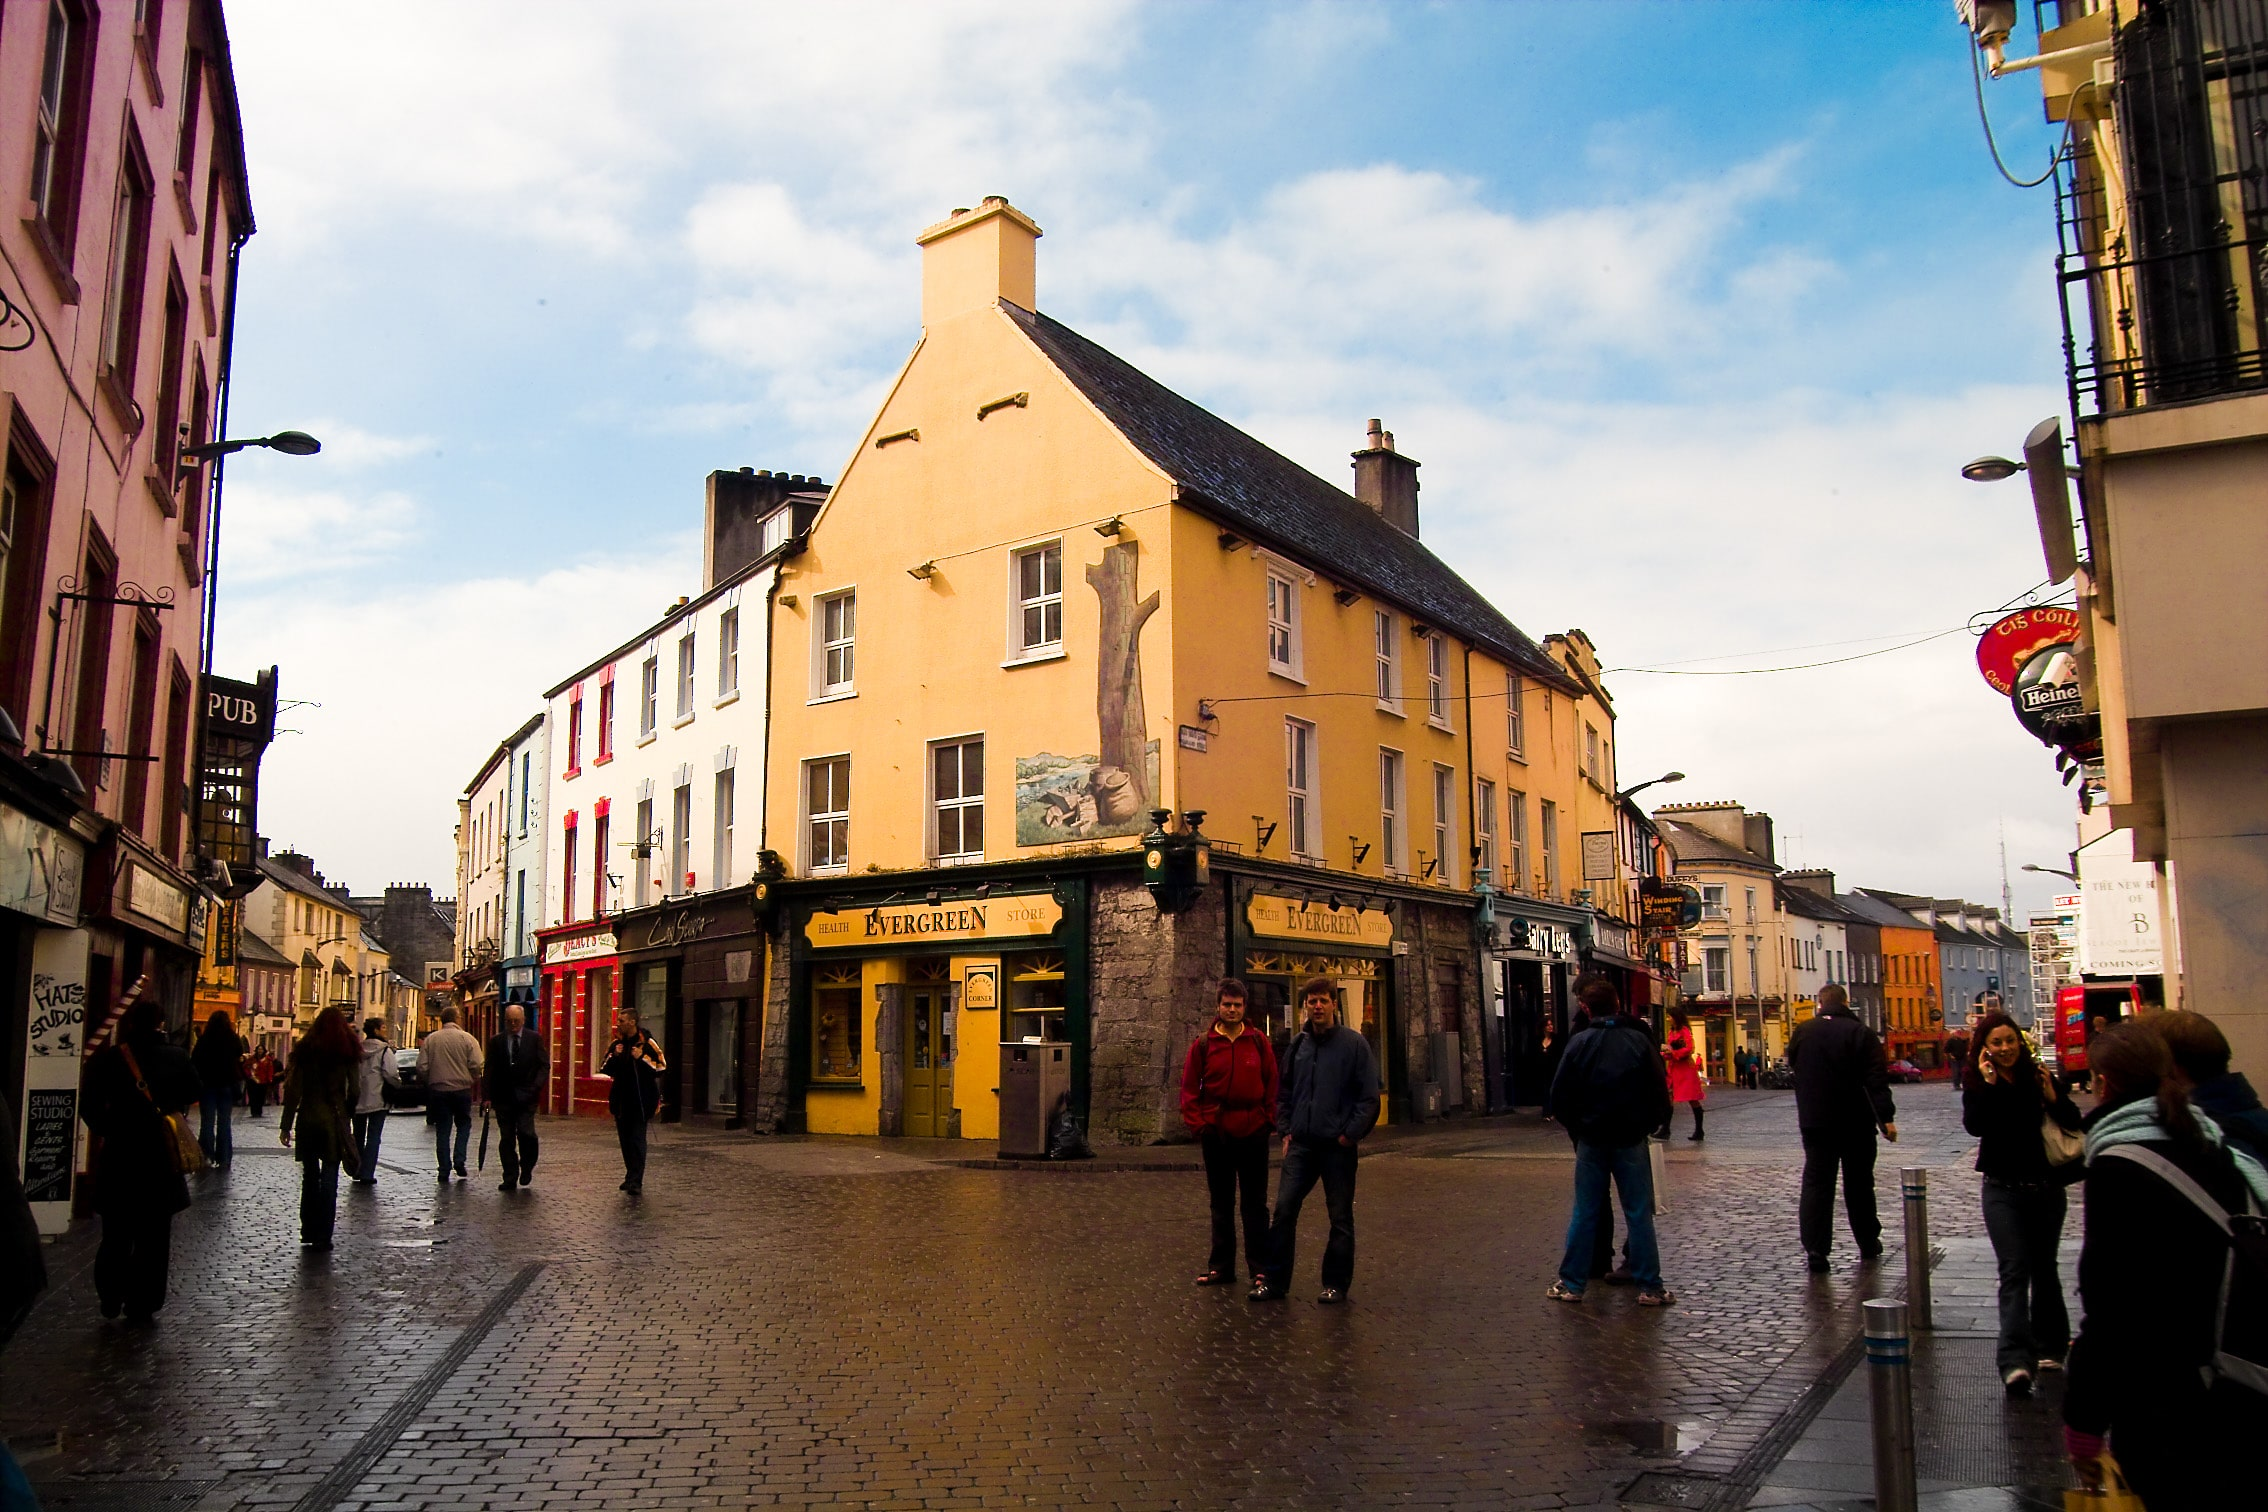 Galway is a great place to visit in Ireland